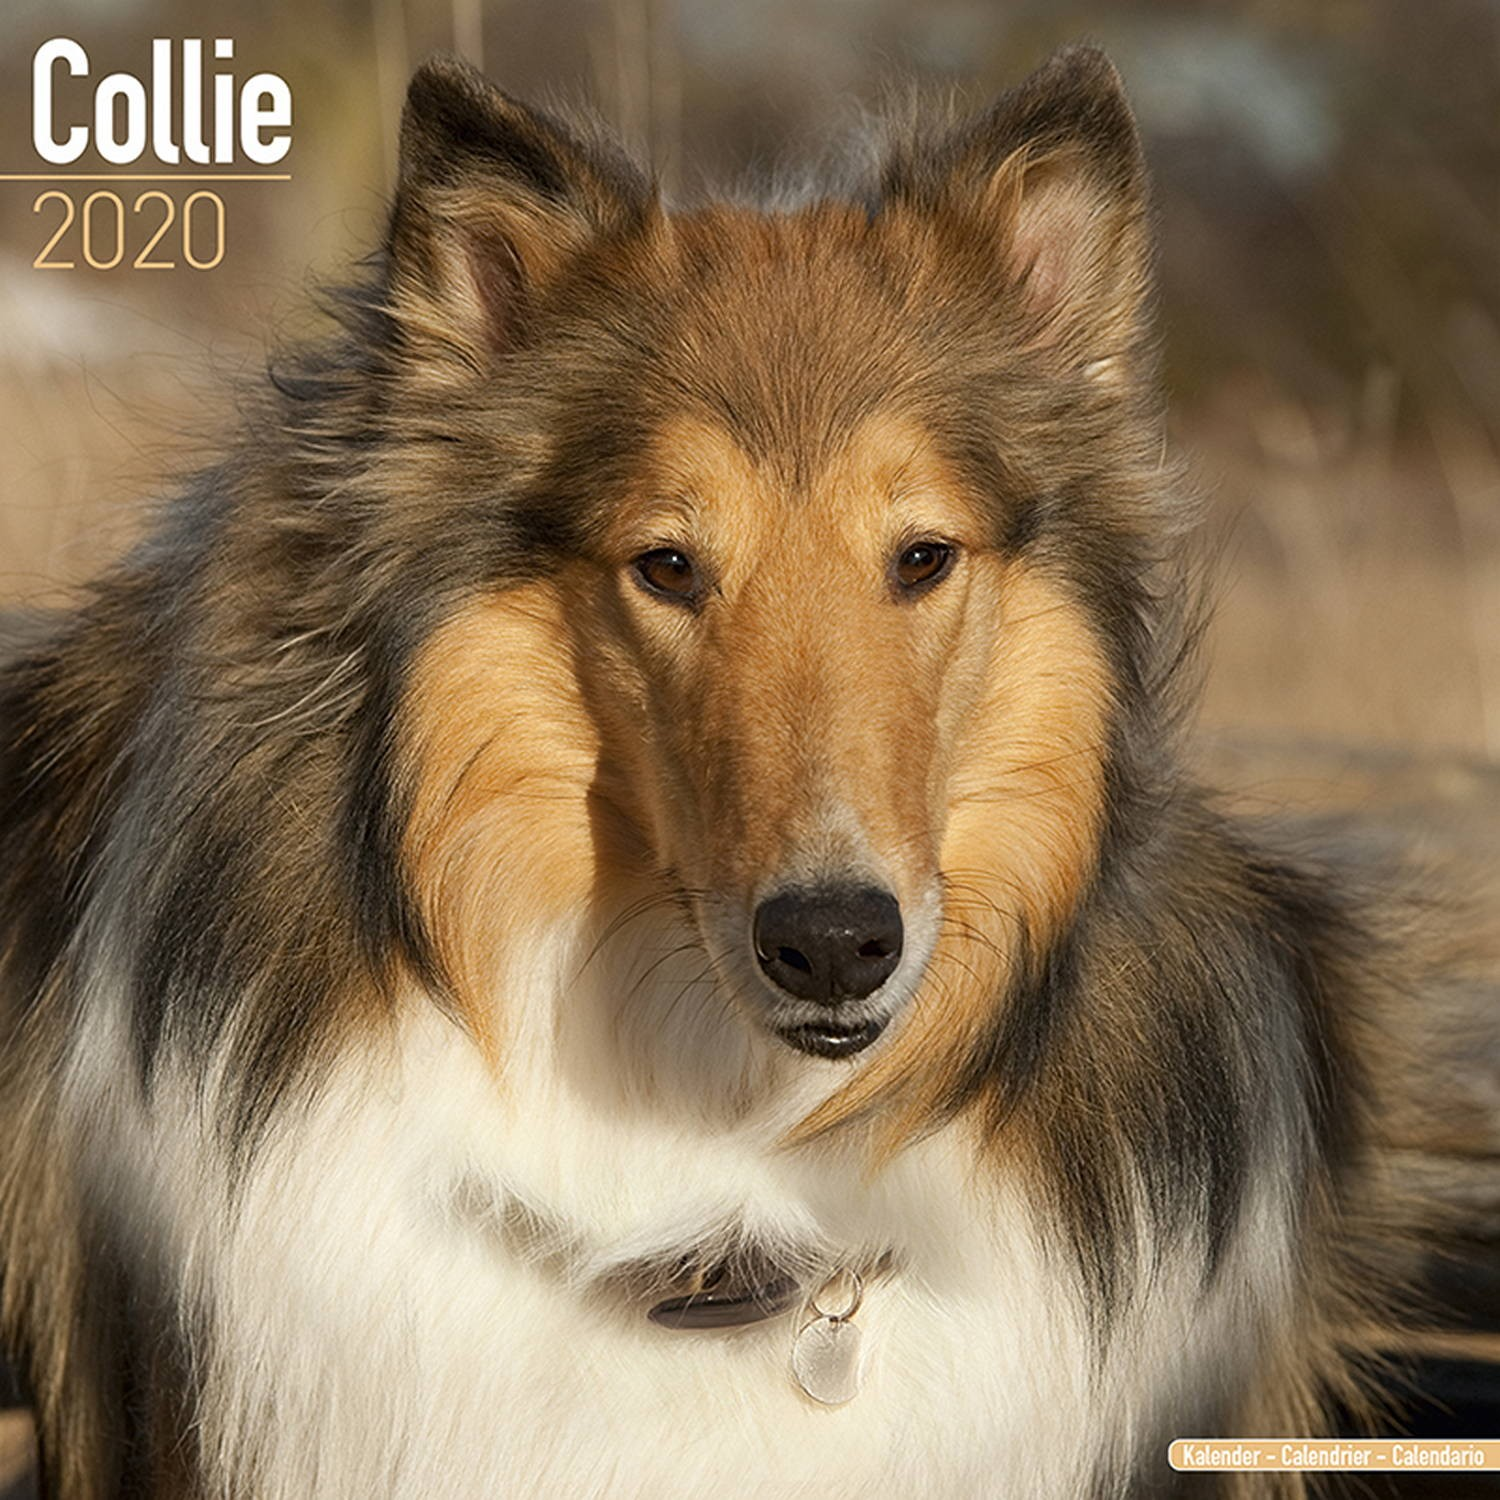 Collie Wall Calendar 2020